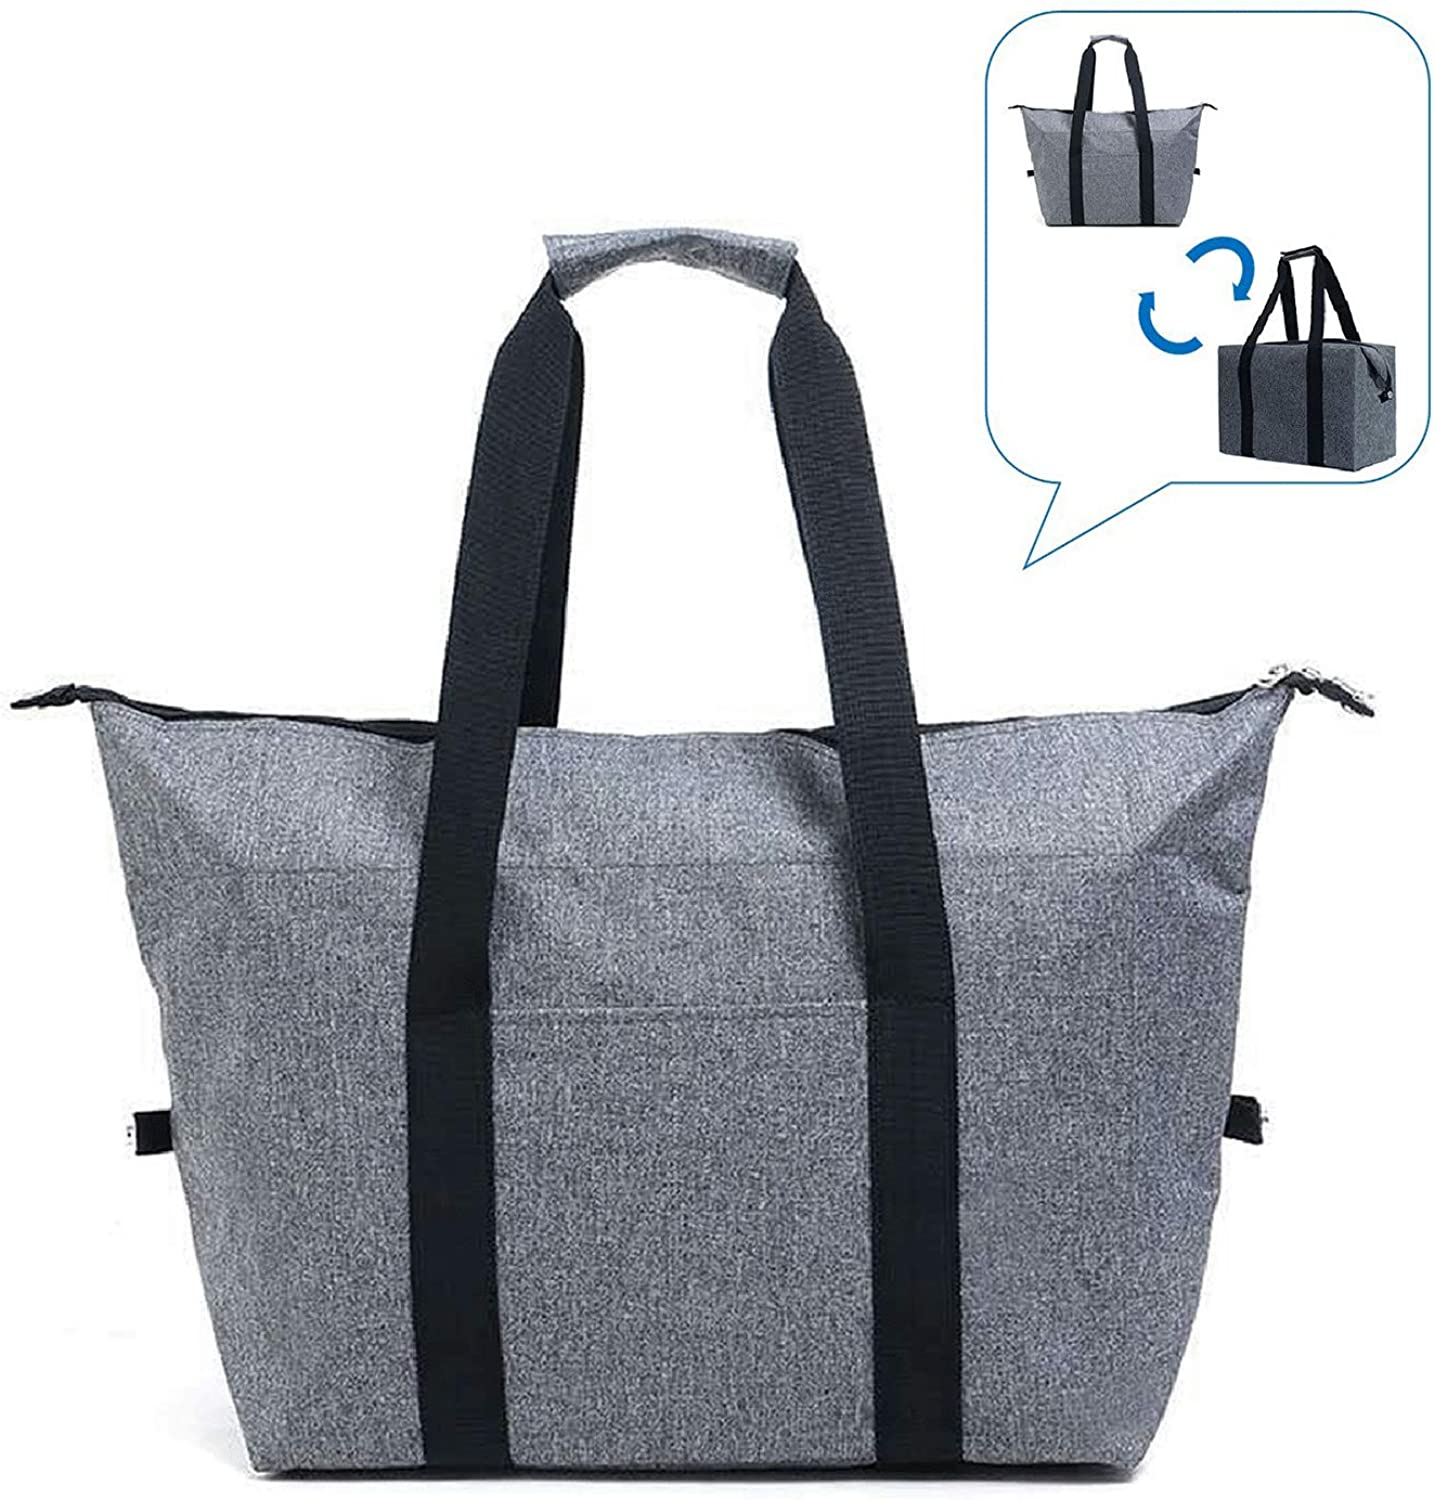 Christmas Gift,Reusable Insulated Tote Bag for Cold/Hot Foods,HAS TWO APPEARANCES,Foldable/Durable/Washable/Sturdy Zipper/Stands Upright/Reinforced Bottom and Handles,Shopping Bag for Groceries and Foods Transport